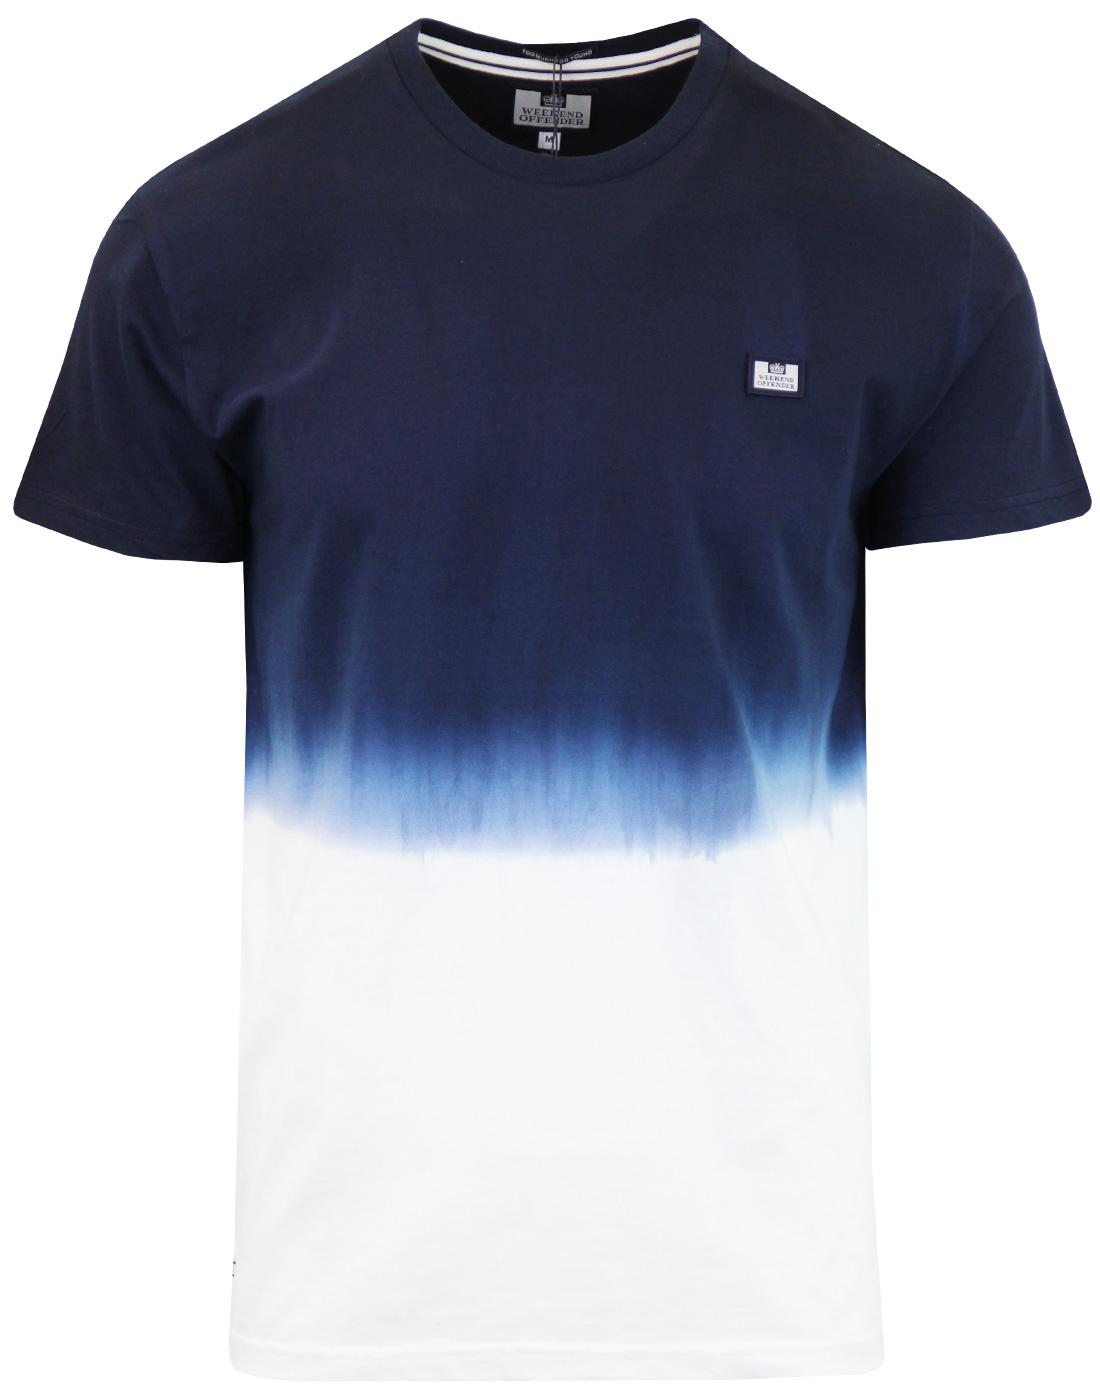 Ellis WEEKEND OFFENDER Retro Dip Dye Block T-shirt